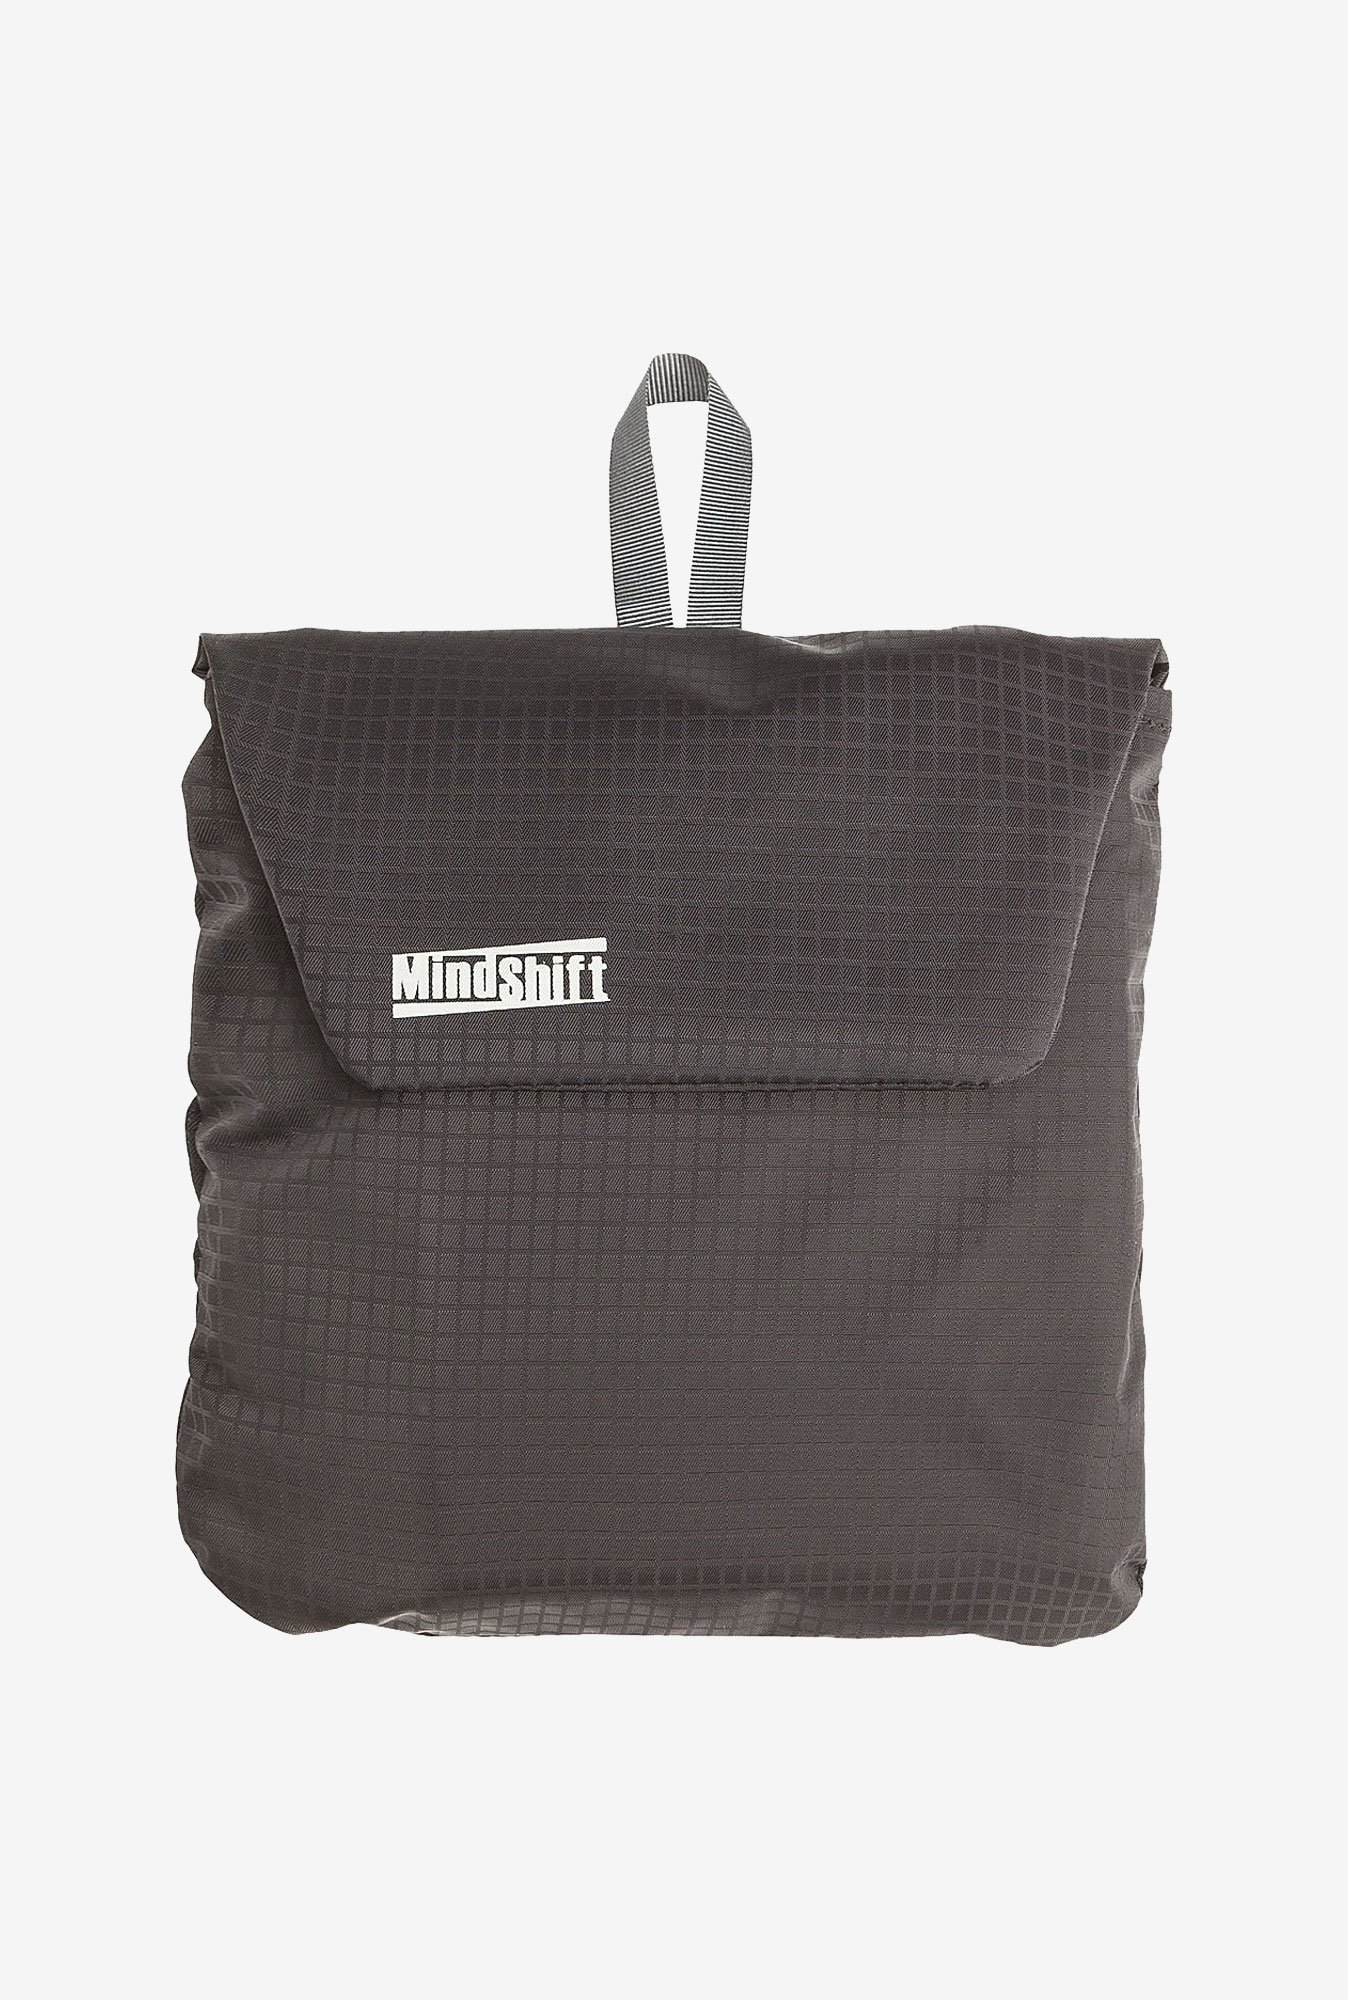 Mindshift Gear R180 Trail Raincover (Black)